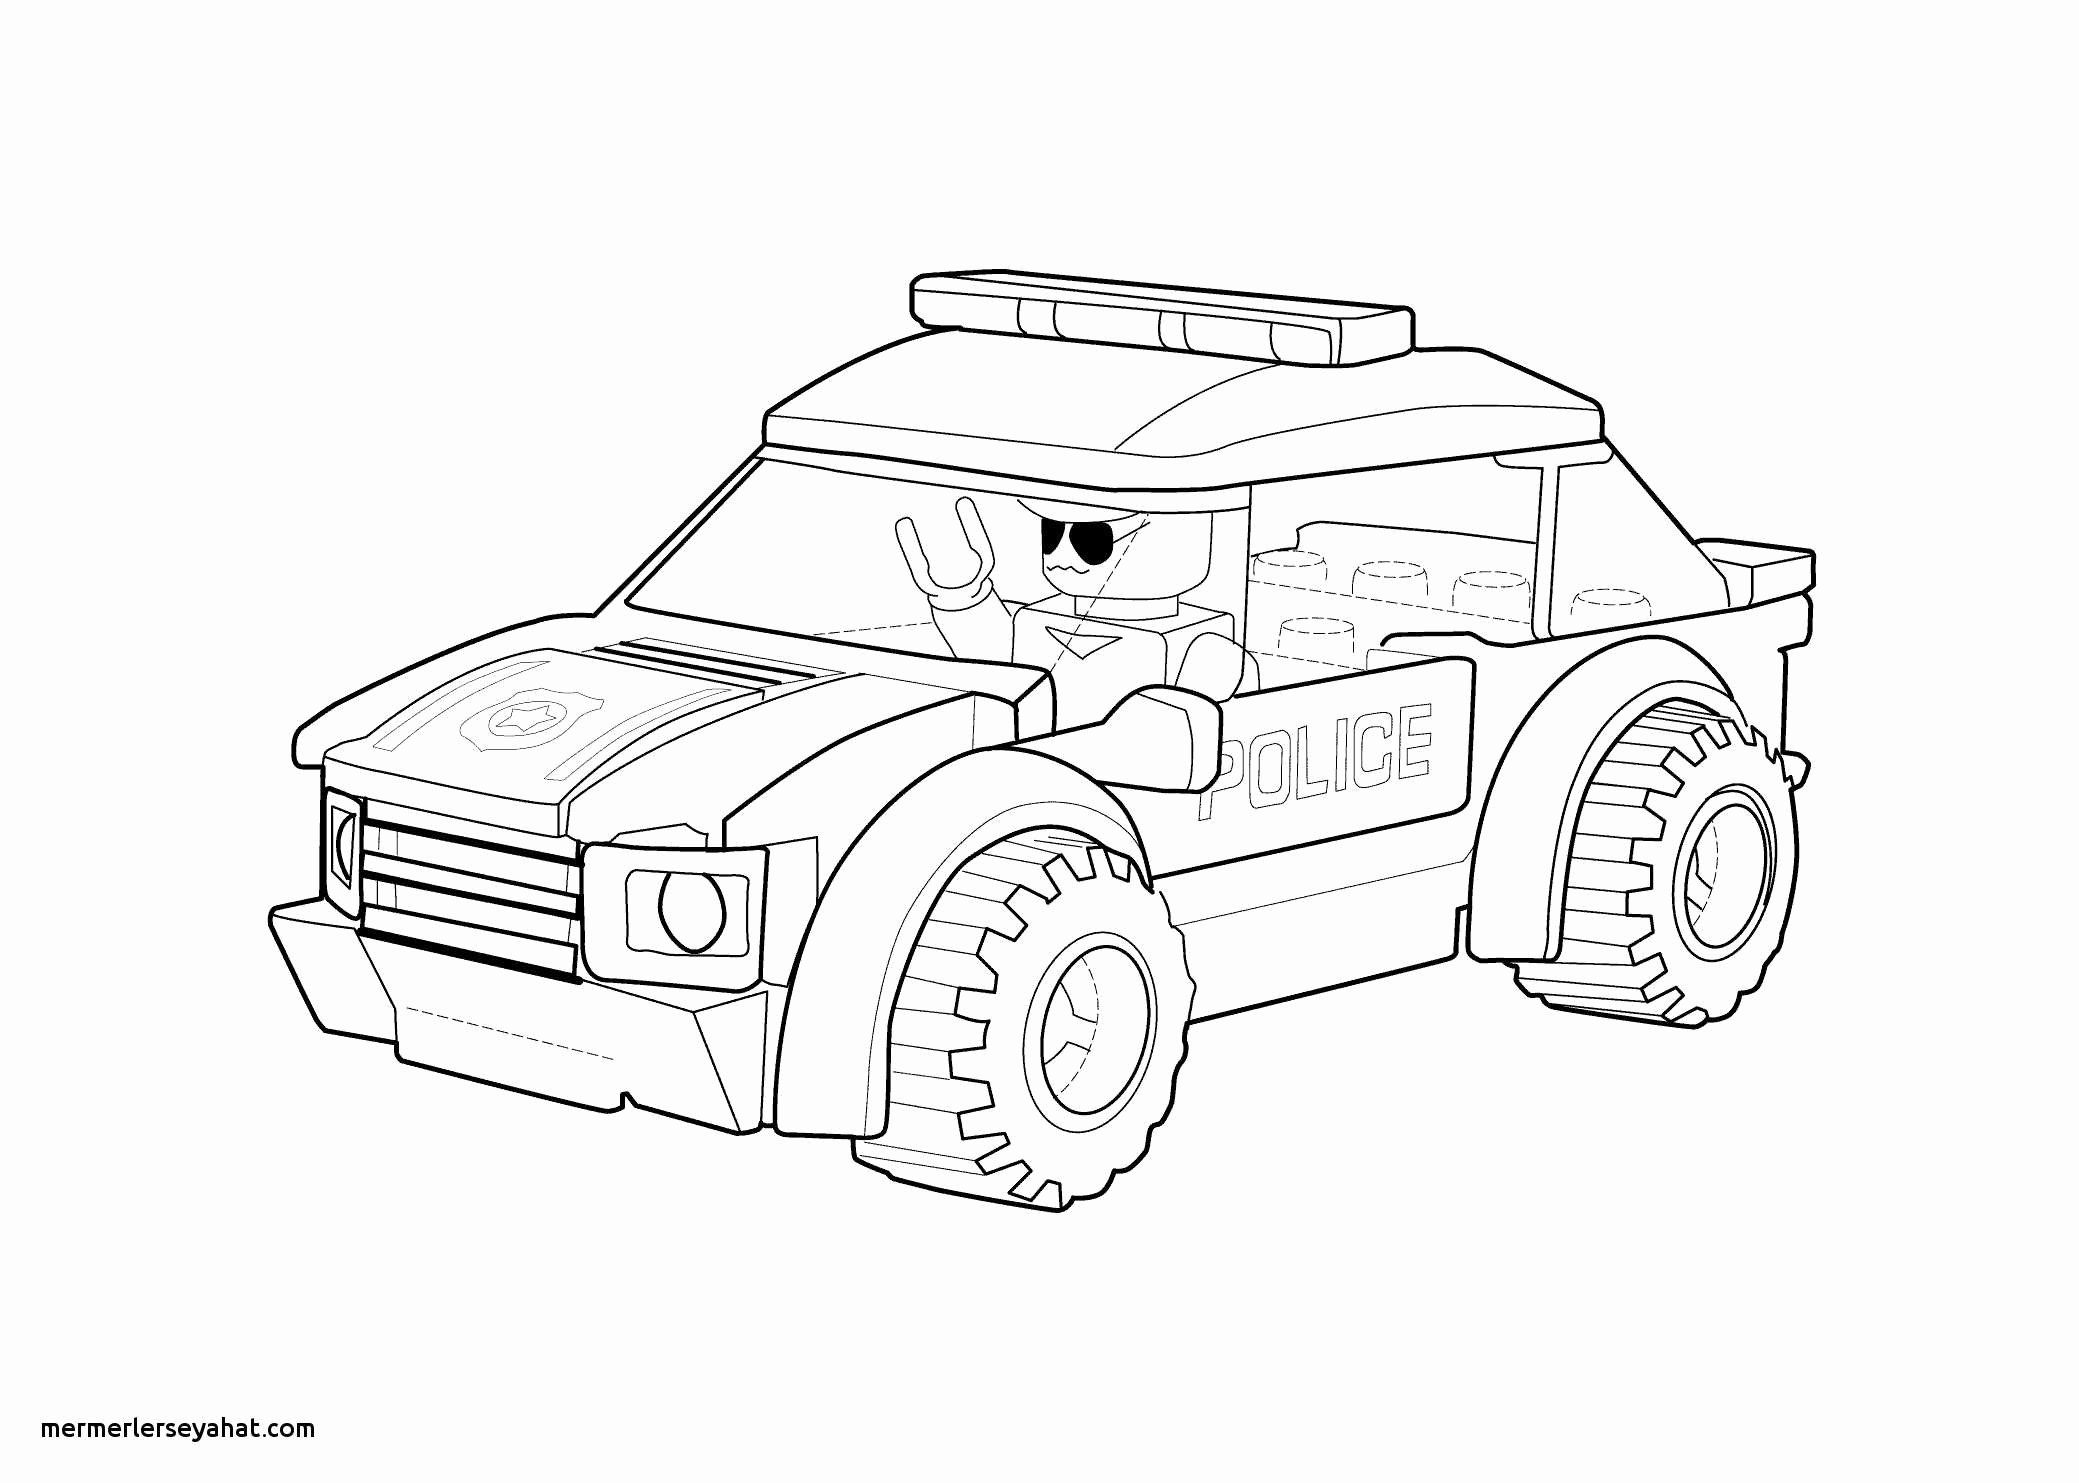 spiderman car coloring pages spiderman racing car coloring pages suse racing pages coloring spiderman car